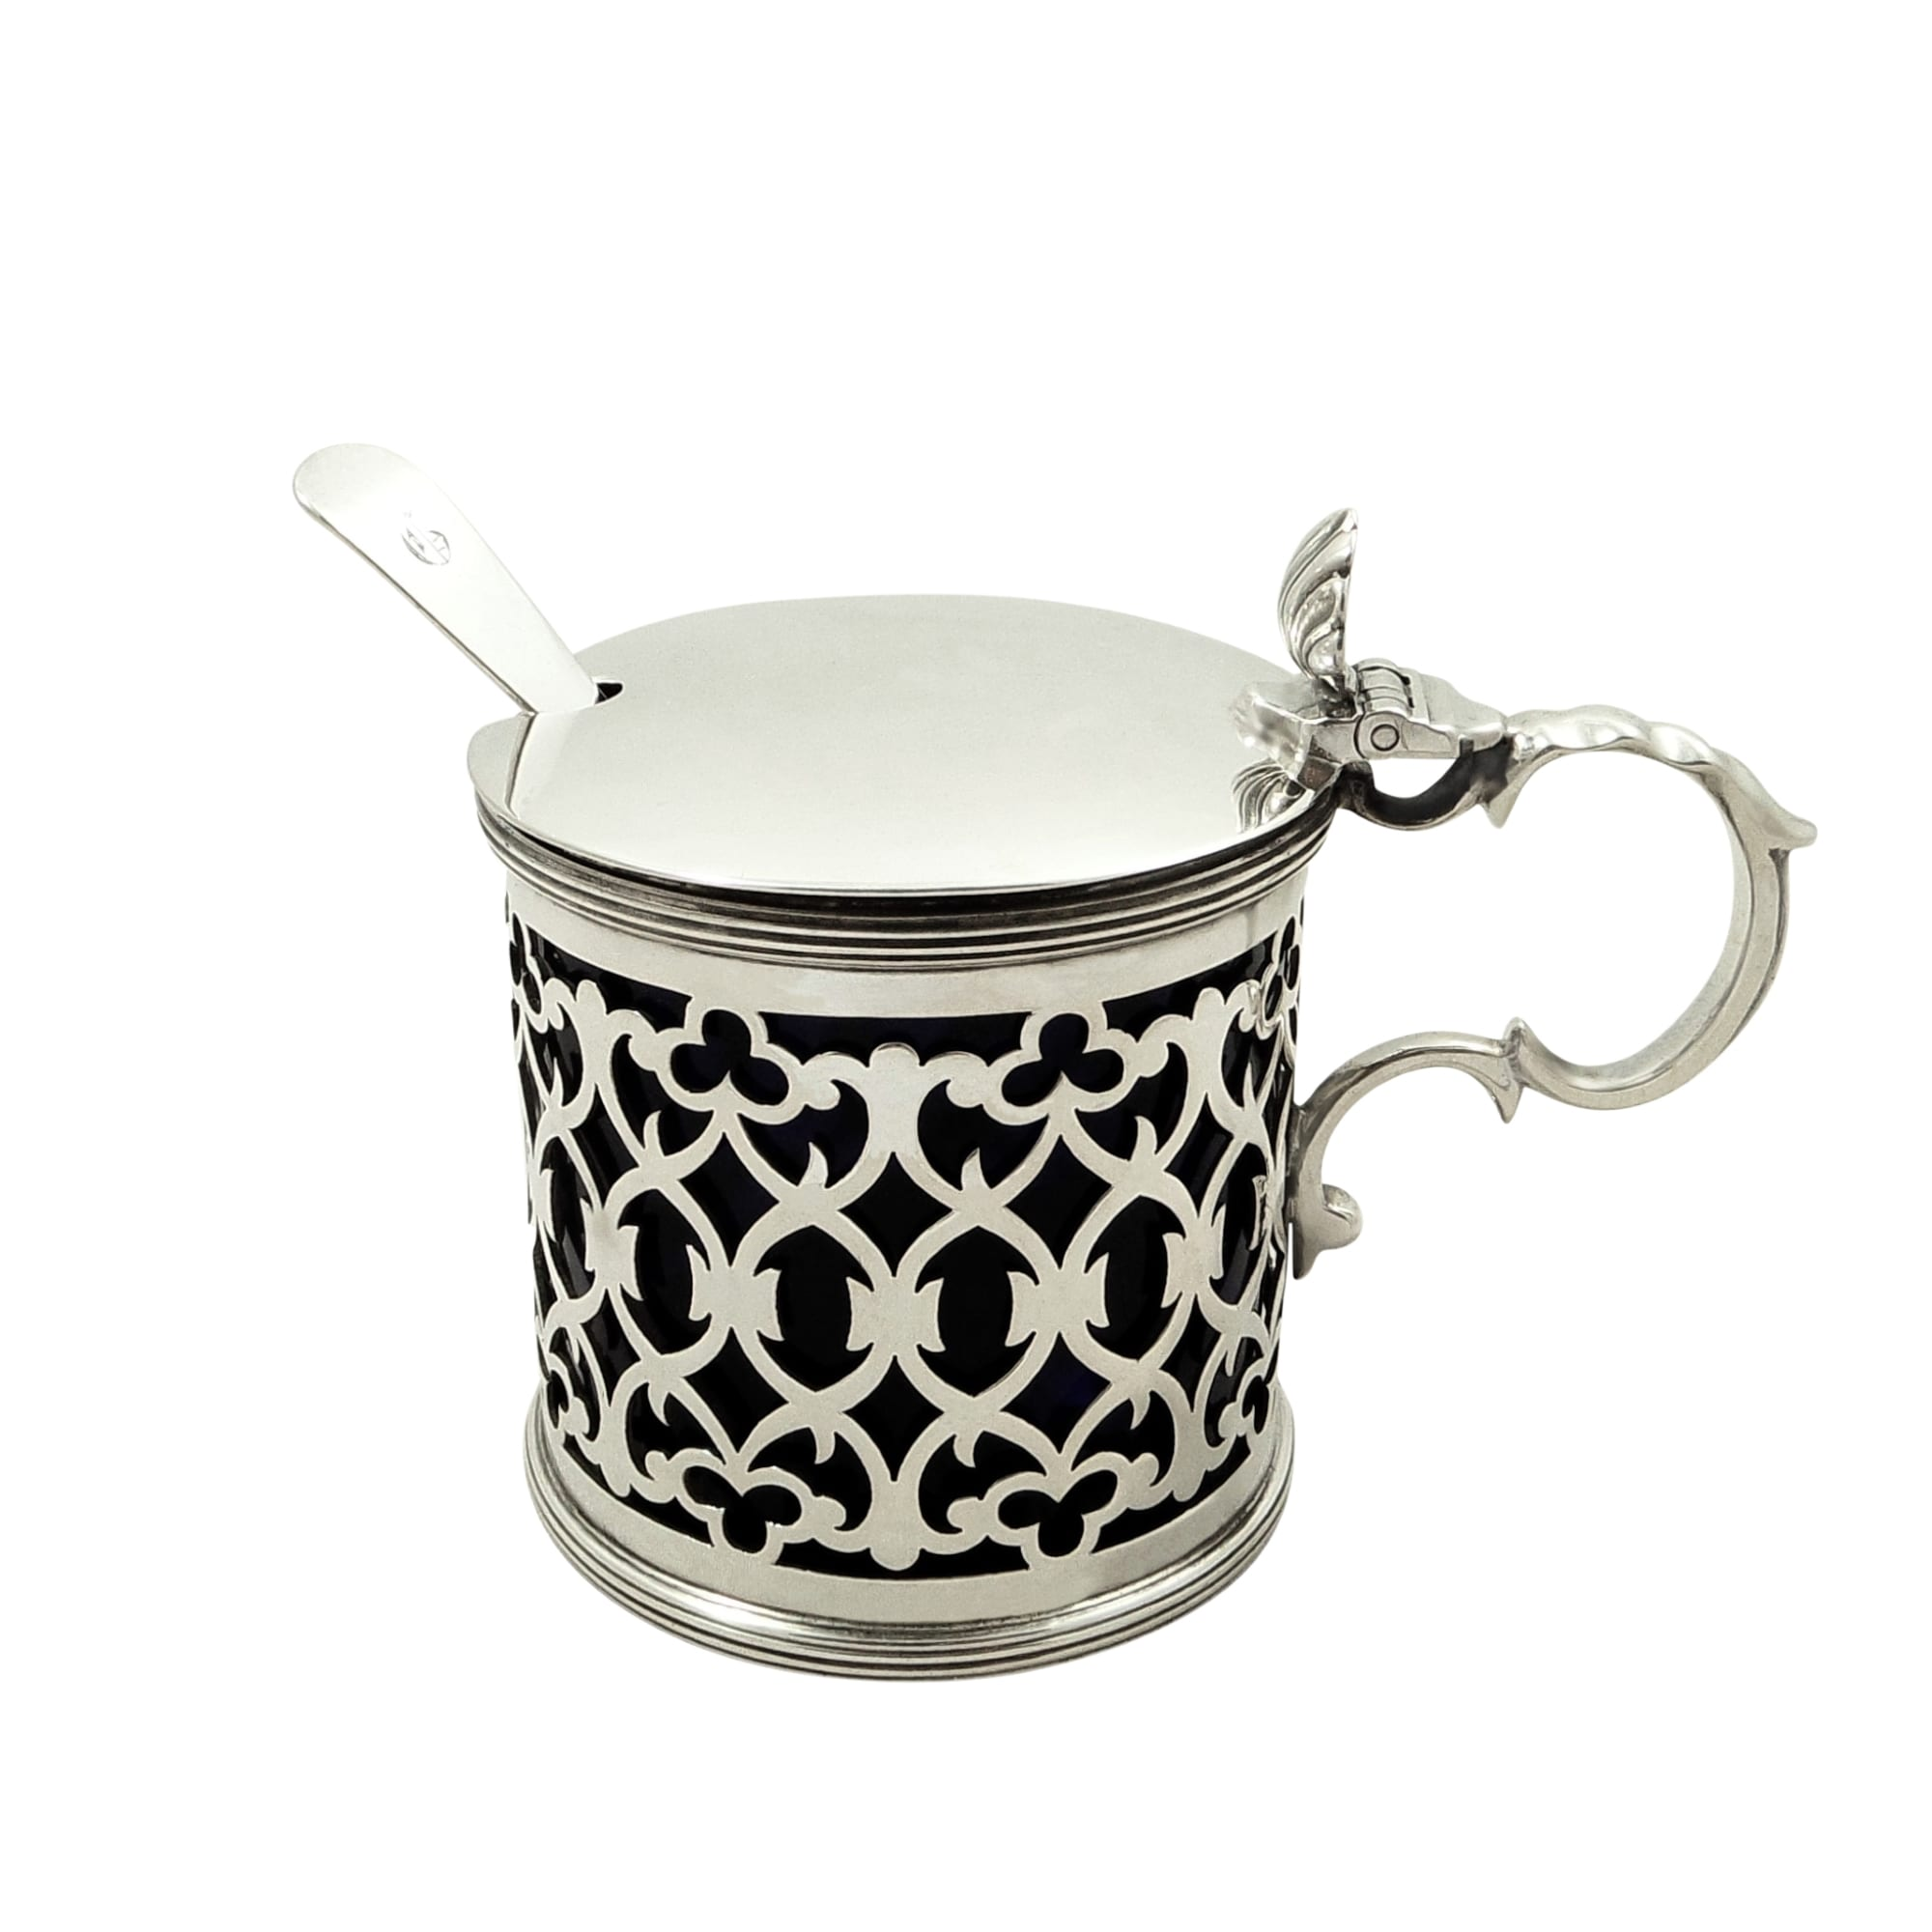 Antique Victorian Sterling Silver Mustard Pot 1899